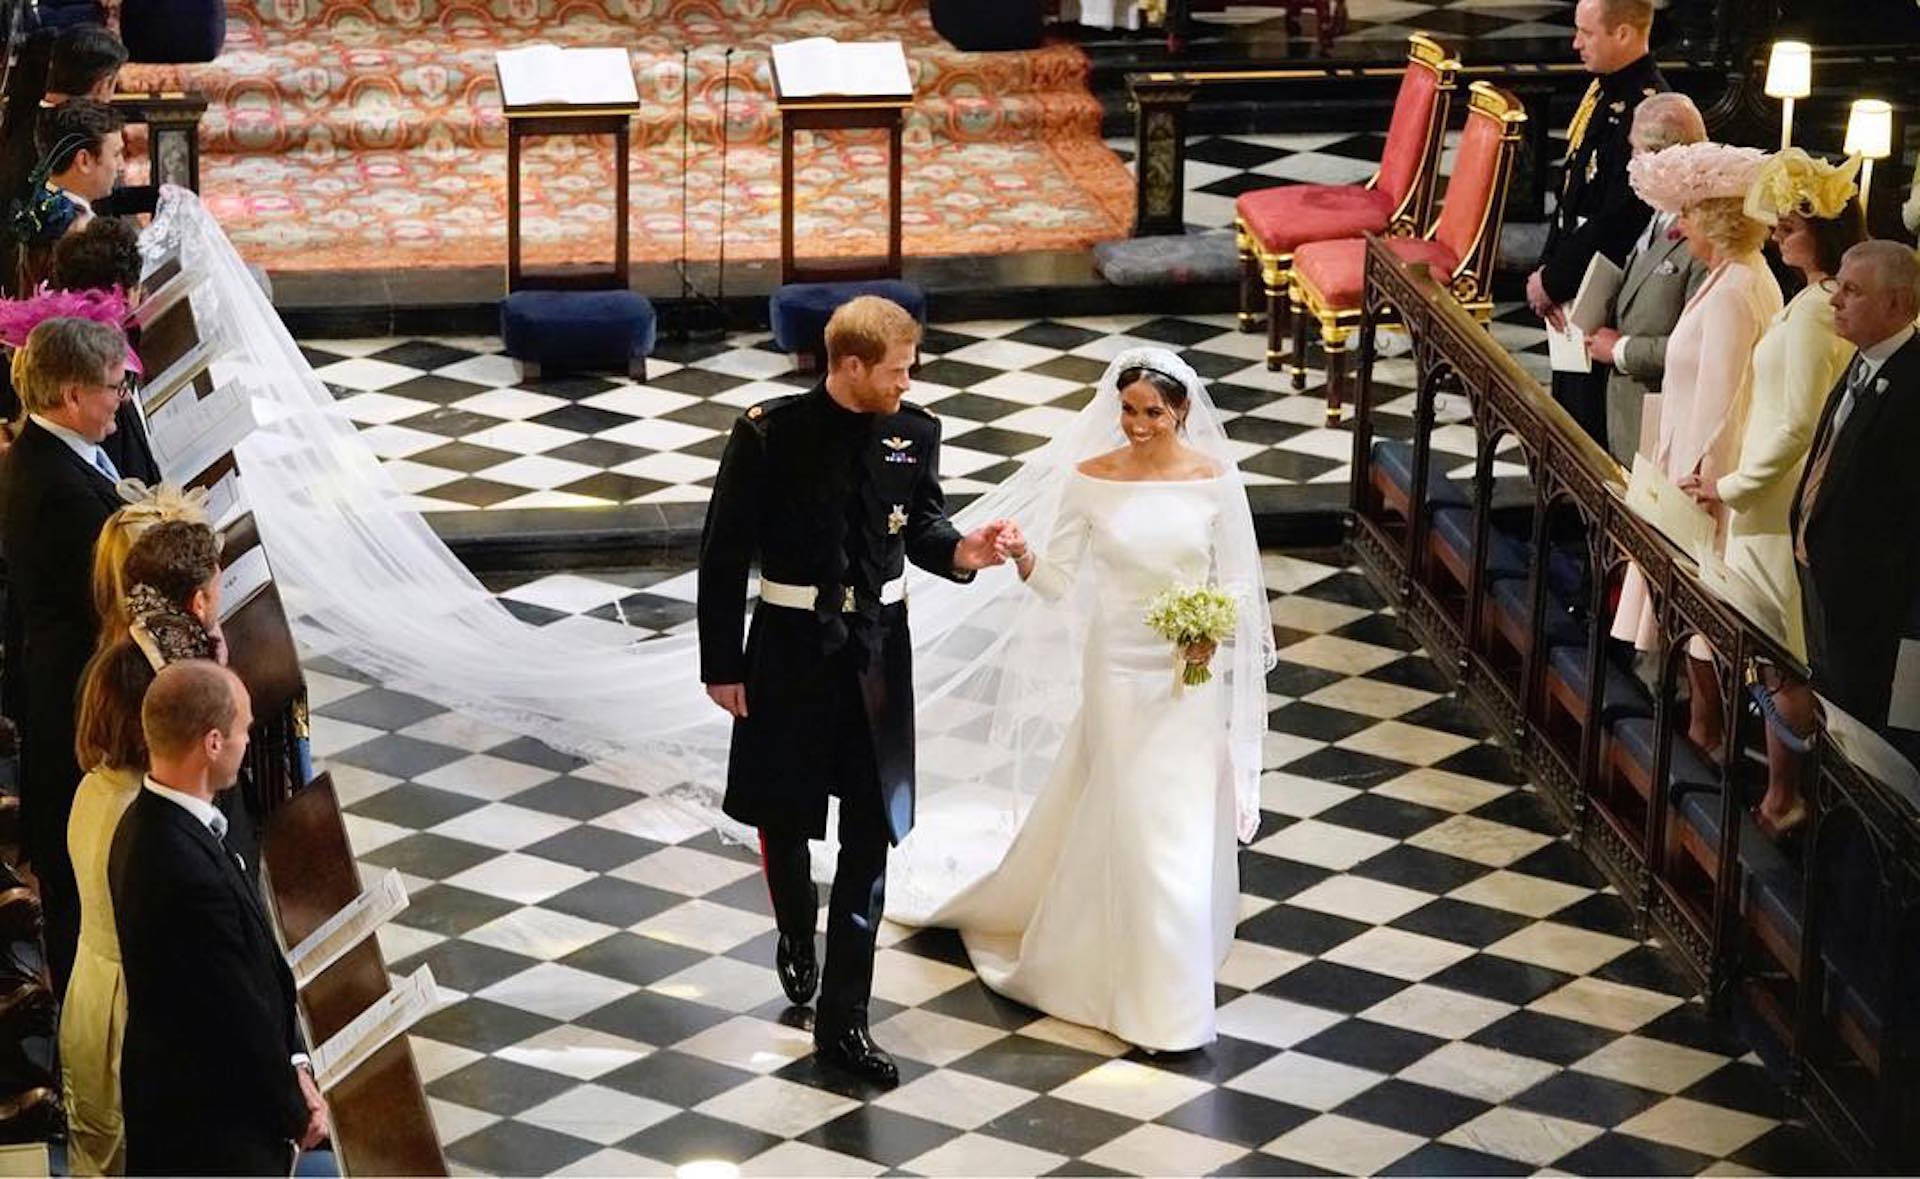 https://s3.amazonaws.com/arc-wordpress-client-uploads/infobae-wp/wp-content/uploads/2018/05/19181057/GENTE-boda-real-principe-harry-meghan-markle-casados.jpg